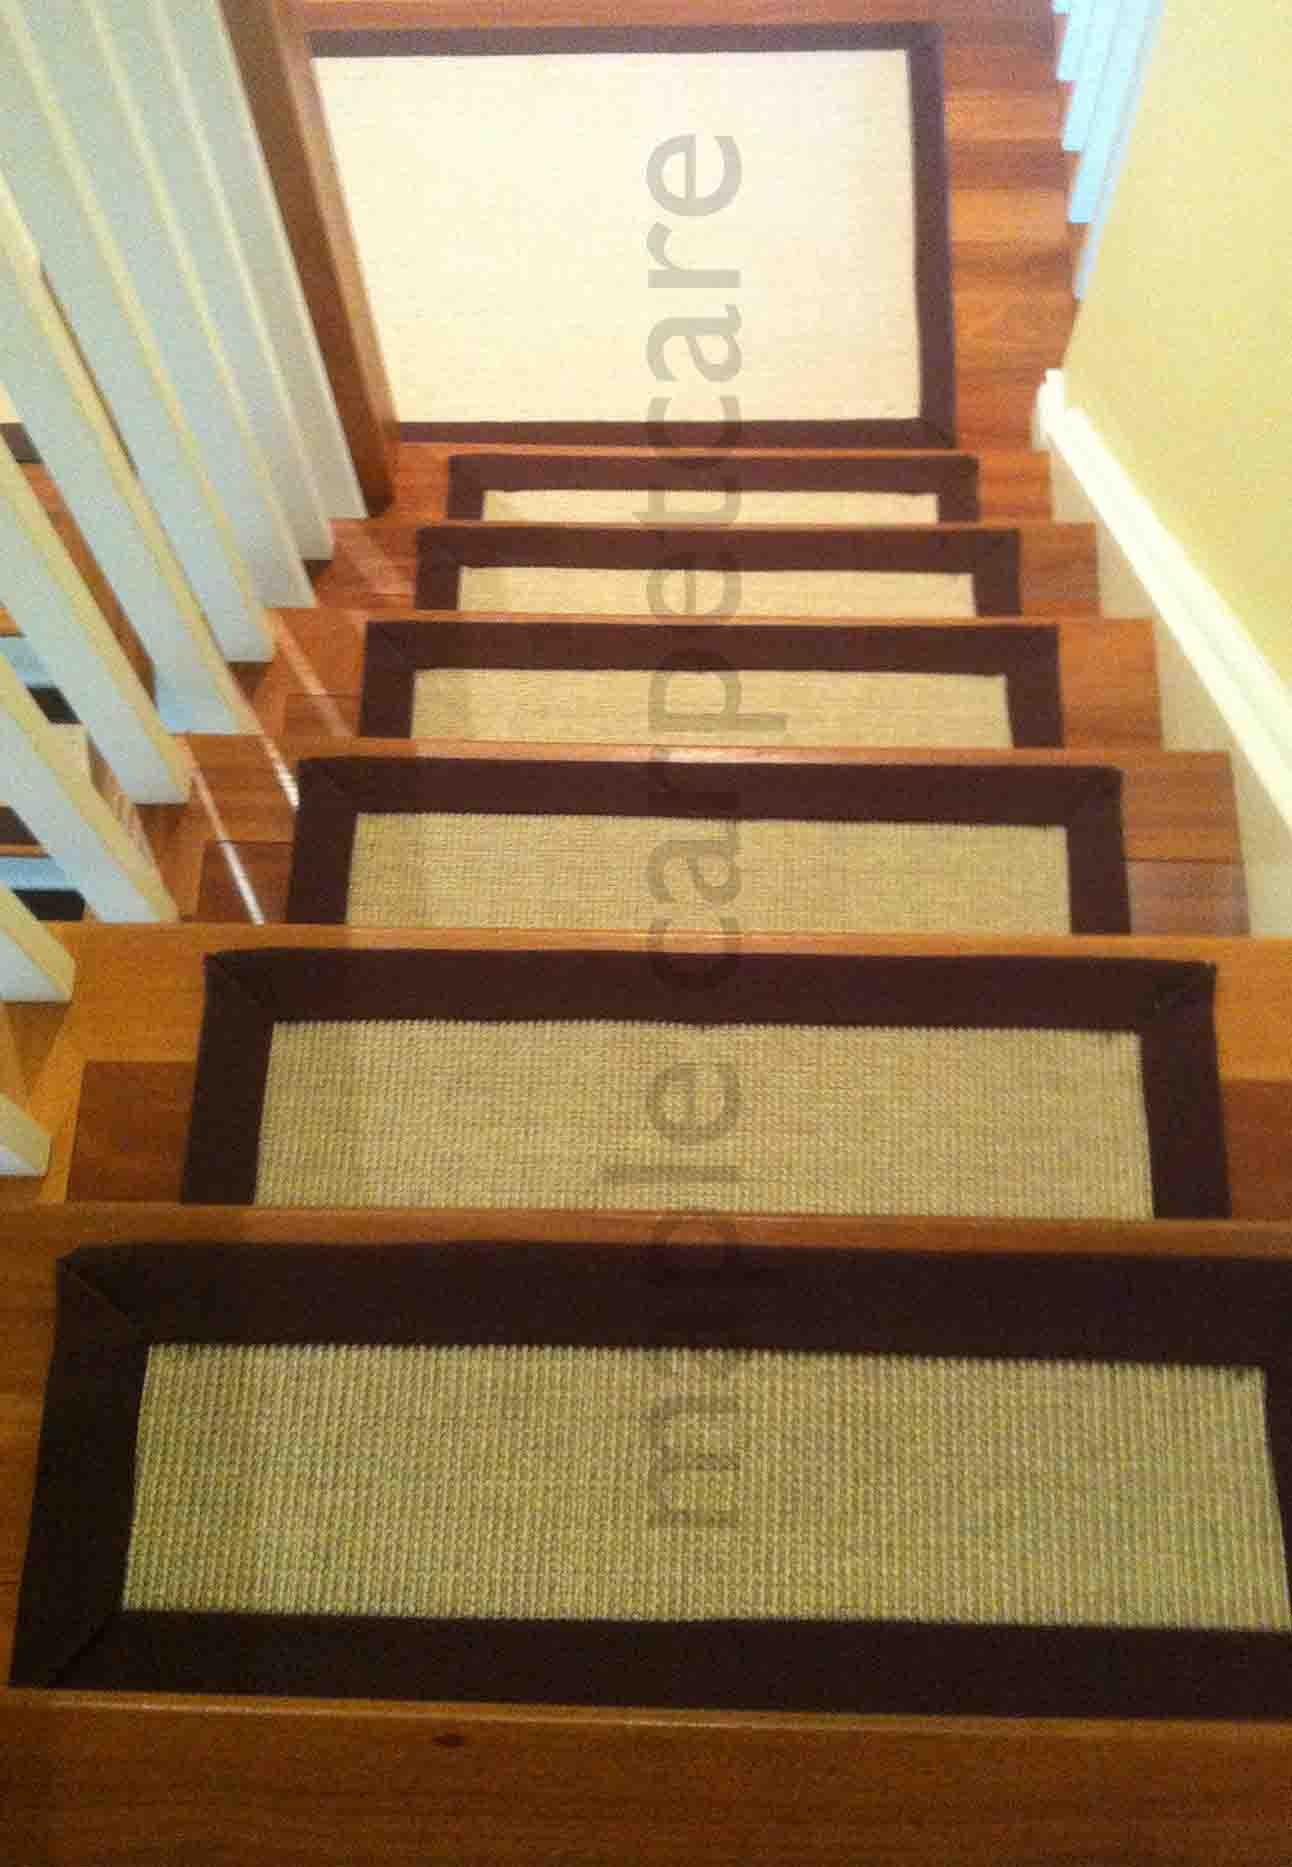 Stair Rugs Rugs For Runners On Stairs Sisal Carpet Laid As Runner With Stair Tread Carpet Runners (View 7 of 15)